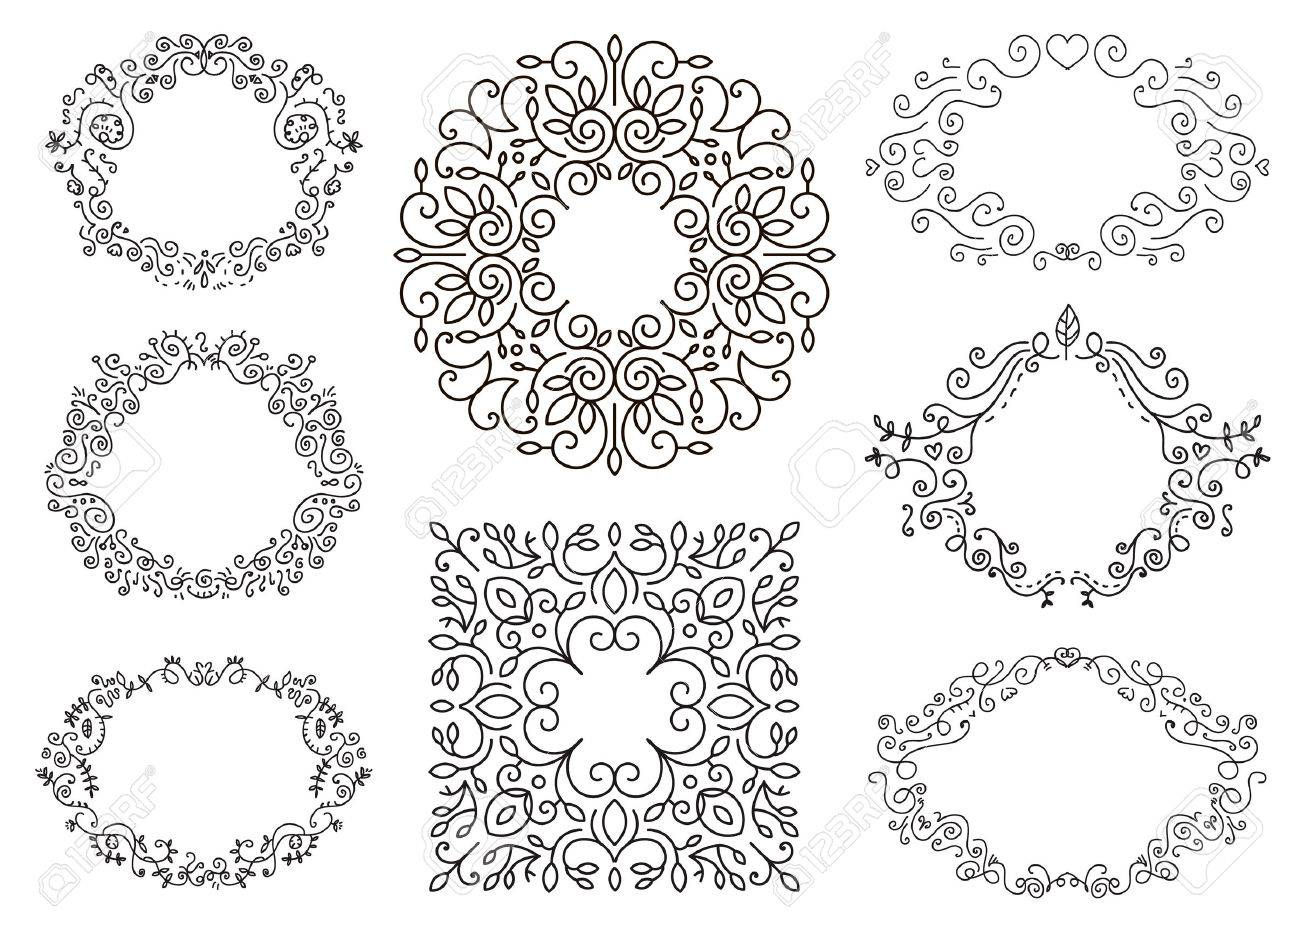 Flourish Black And White Frames Template Set. Swirling Calligraphic ...